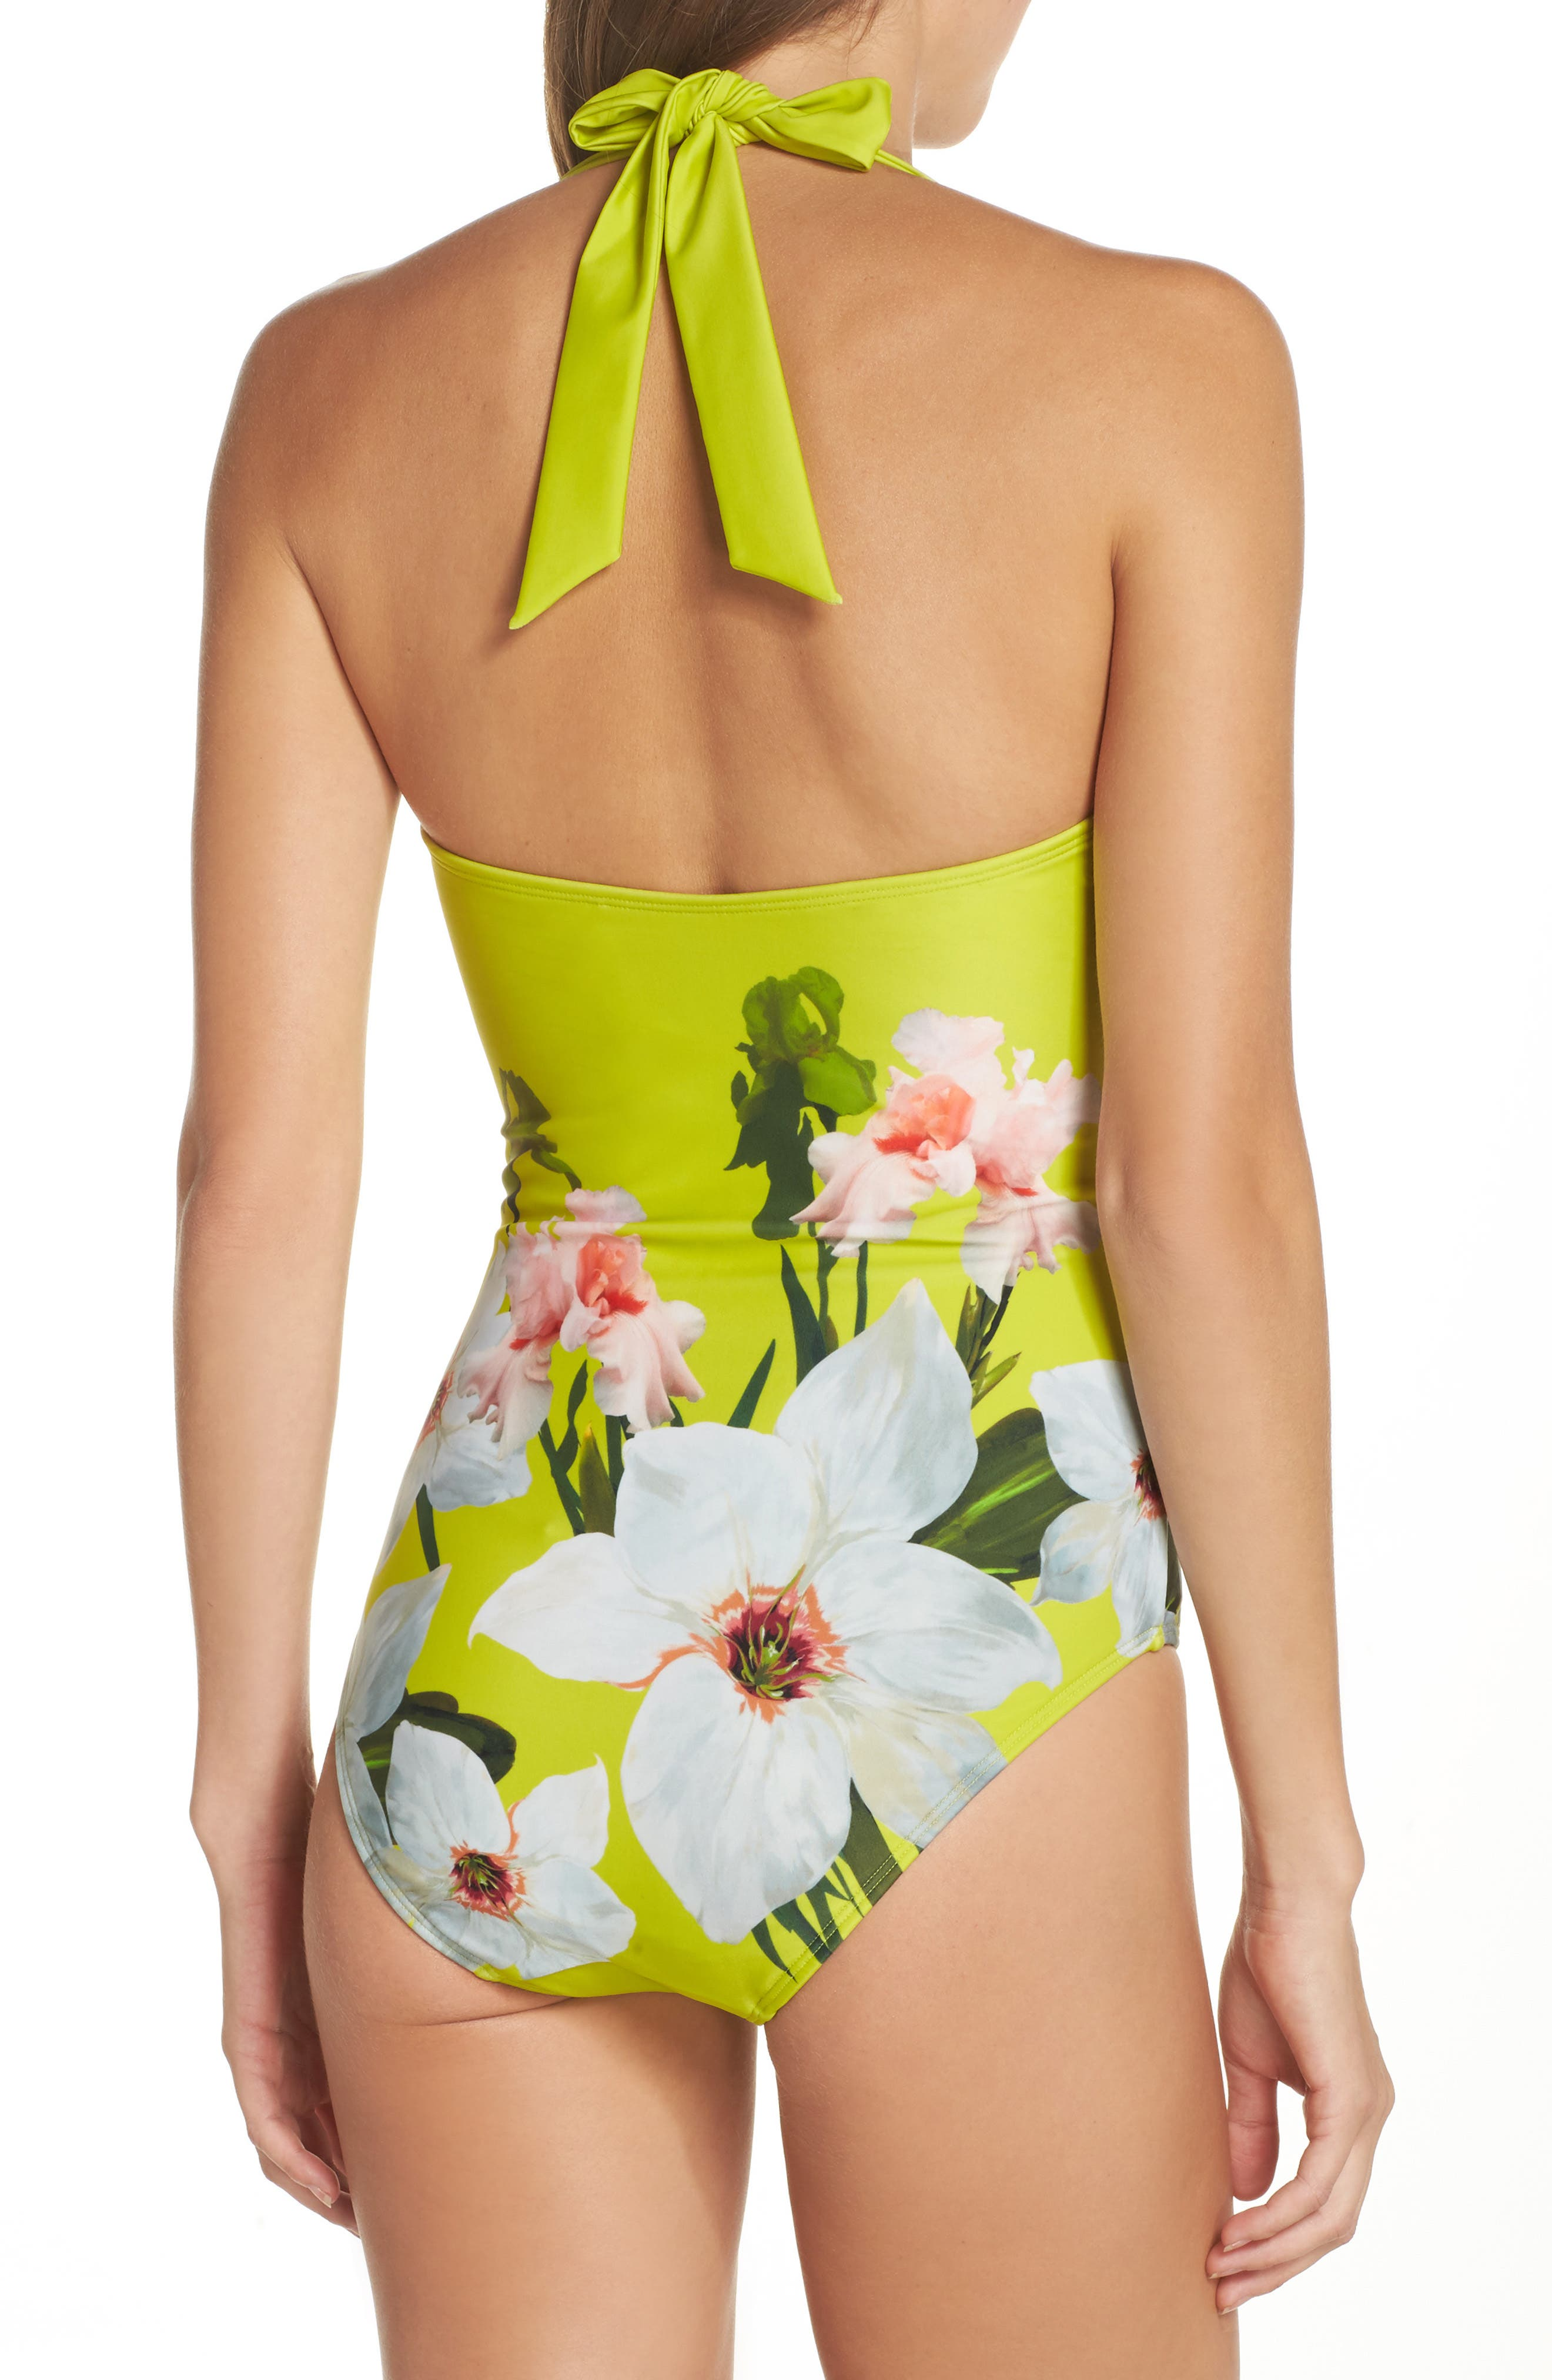 Chatsworth Bloom One-Piece Swimsuit,                             Alternate thumbnail 2, color,                             Light Green